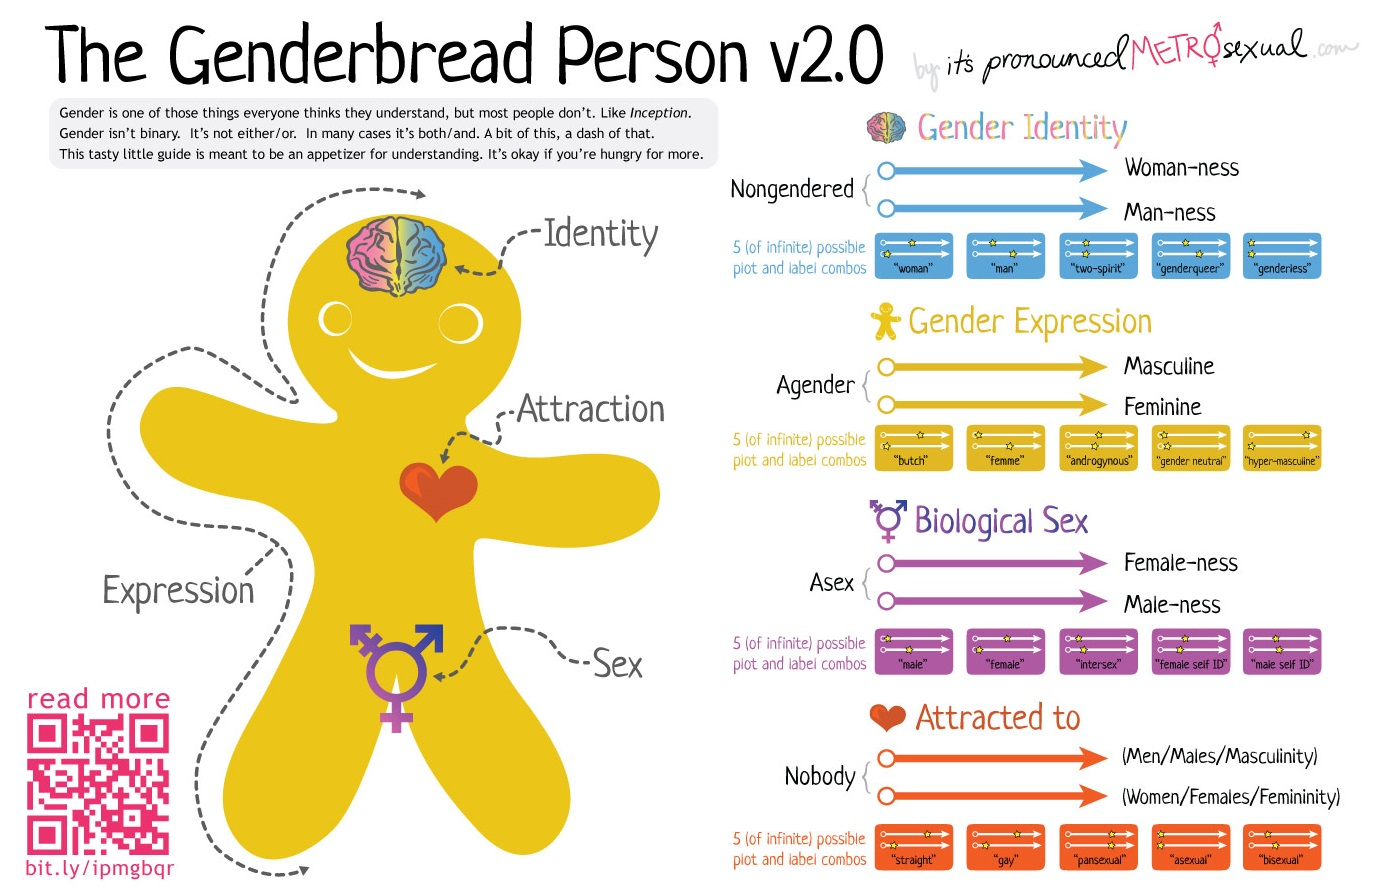 Speaker Says Genderbread Person Highlights Need For